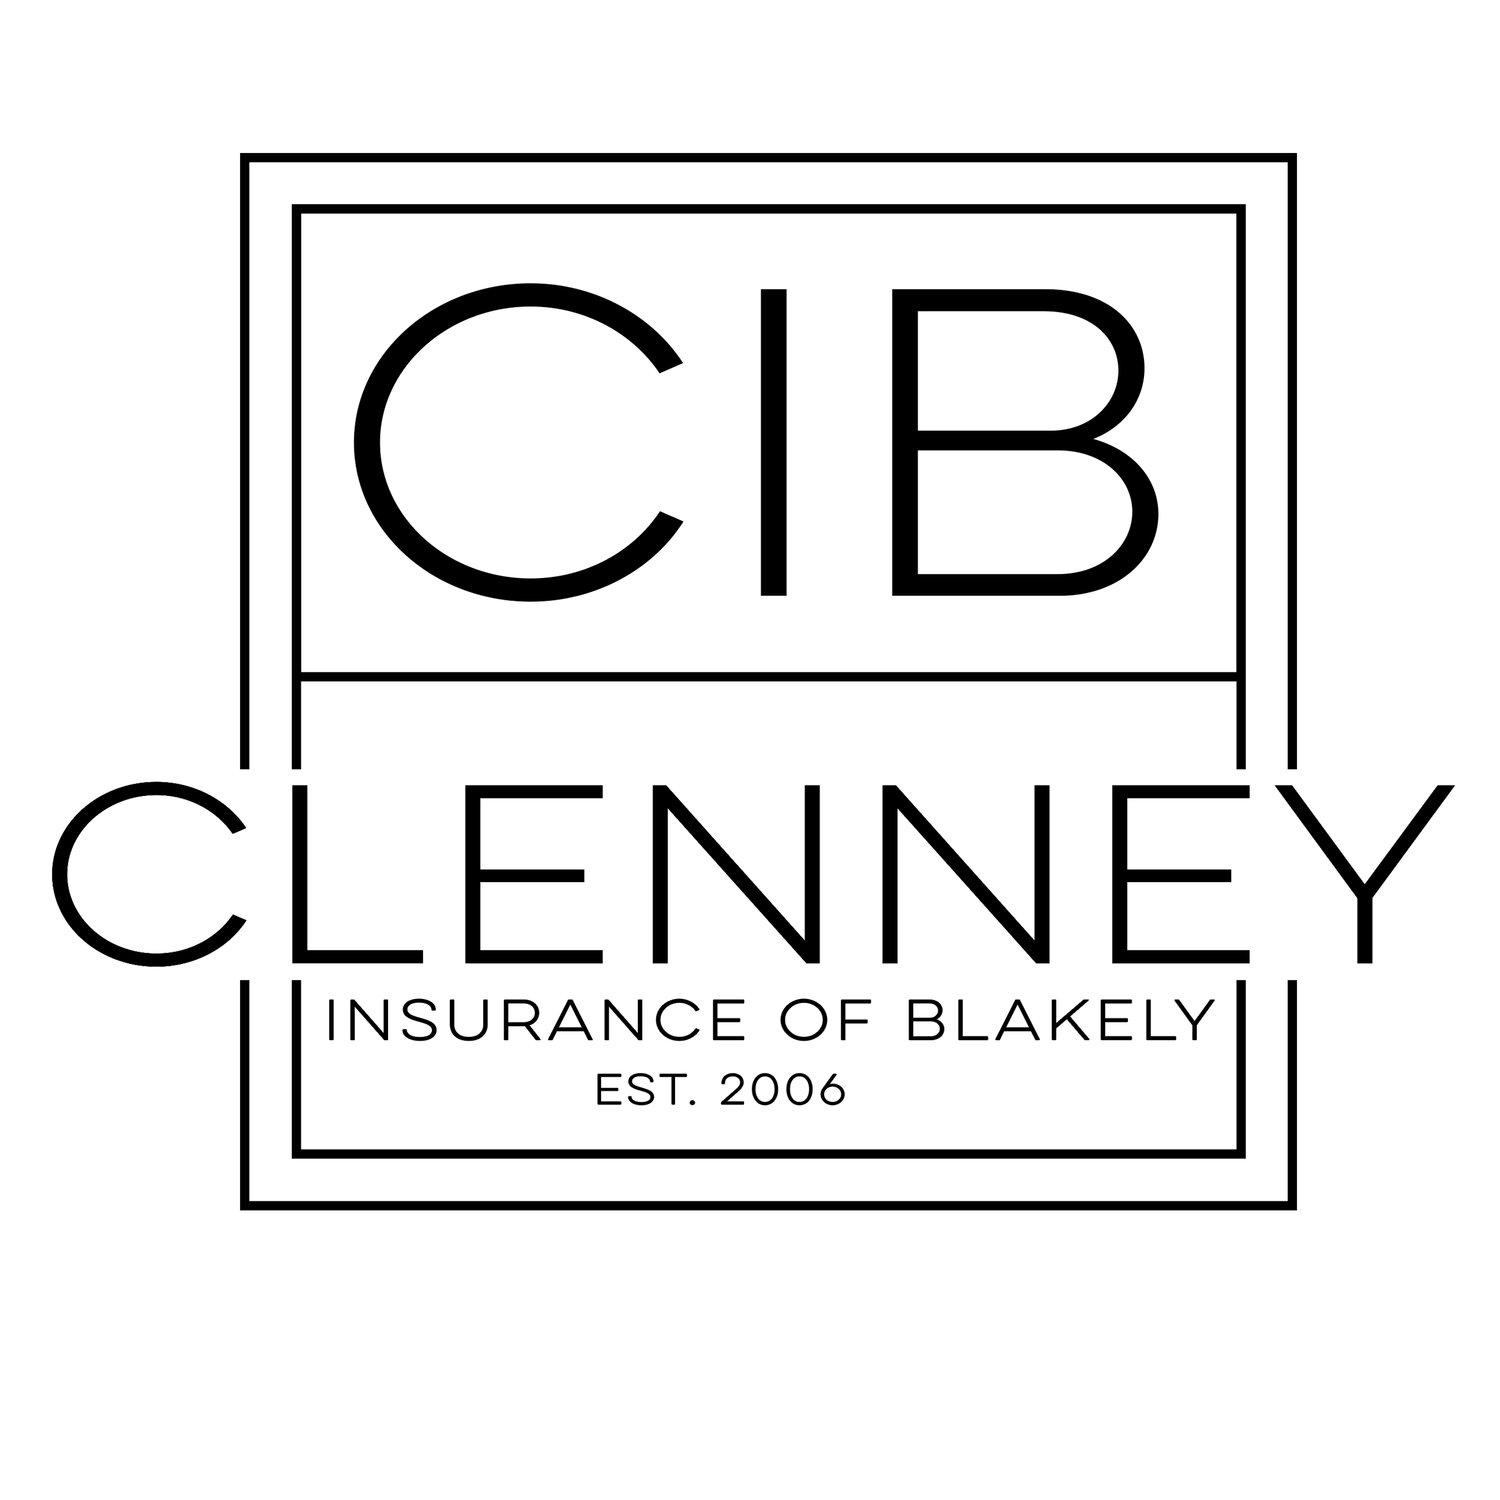 Clenney Insurance of Blakely